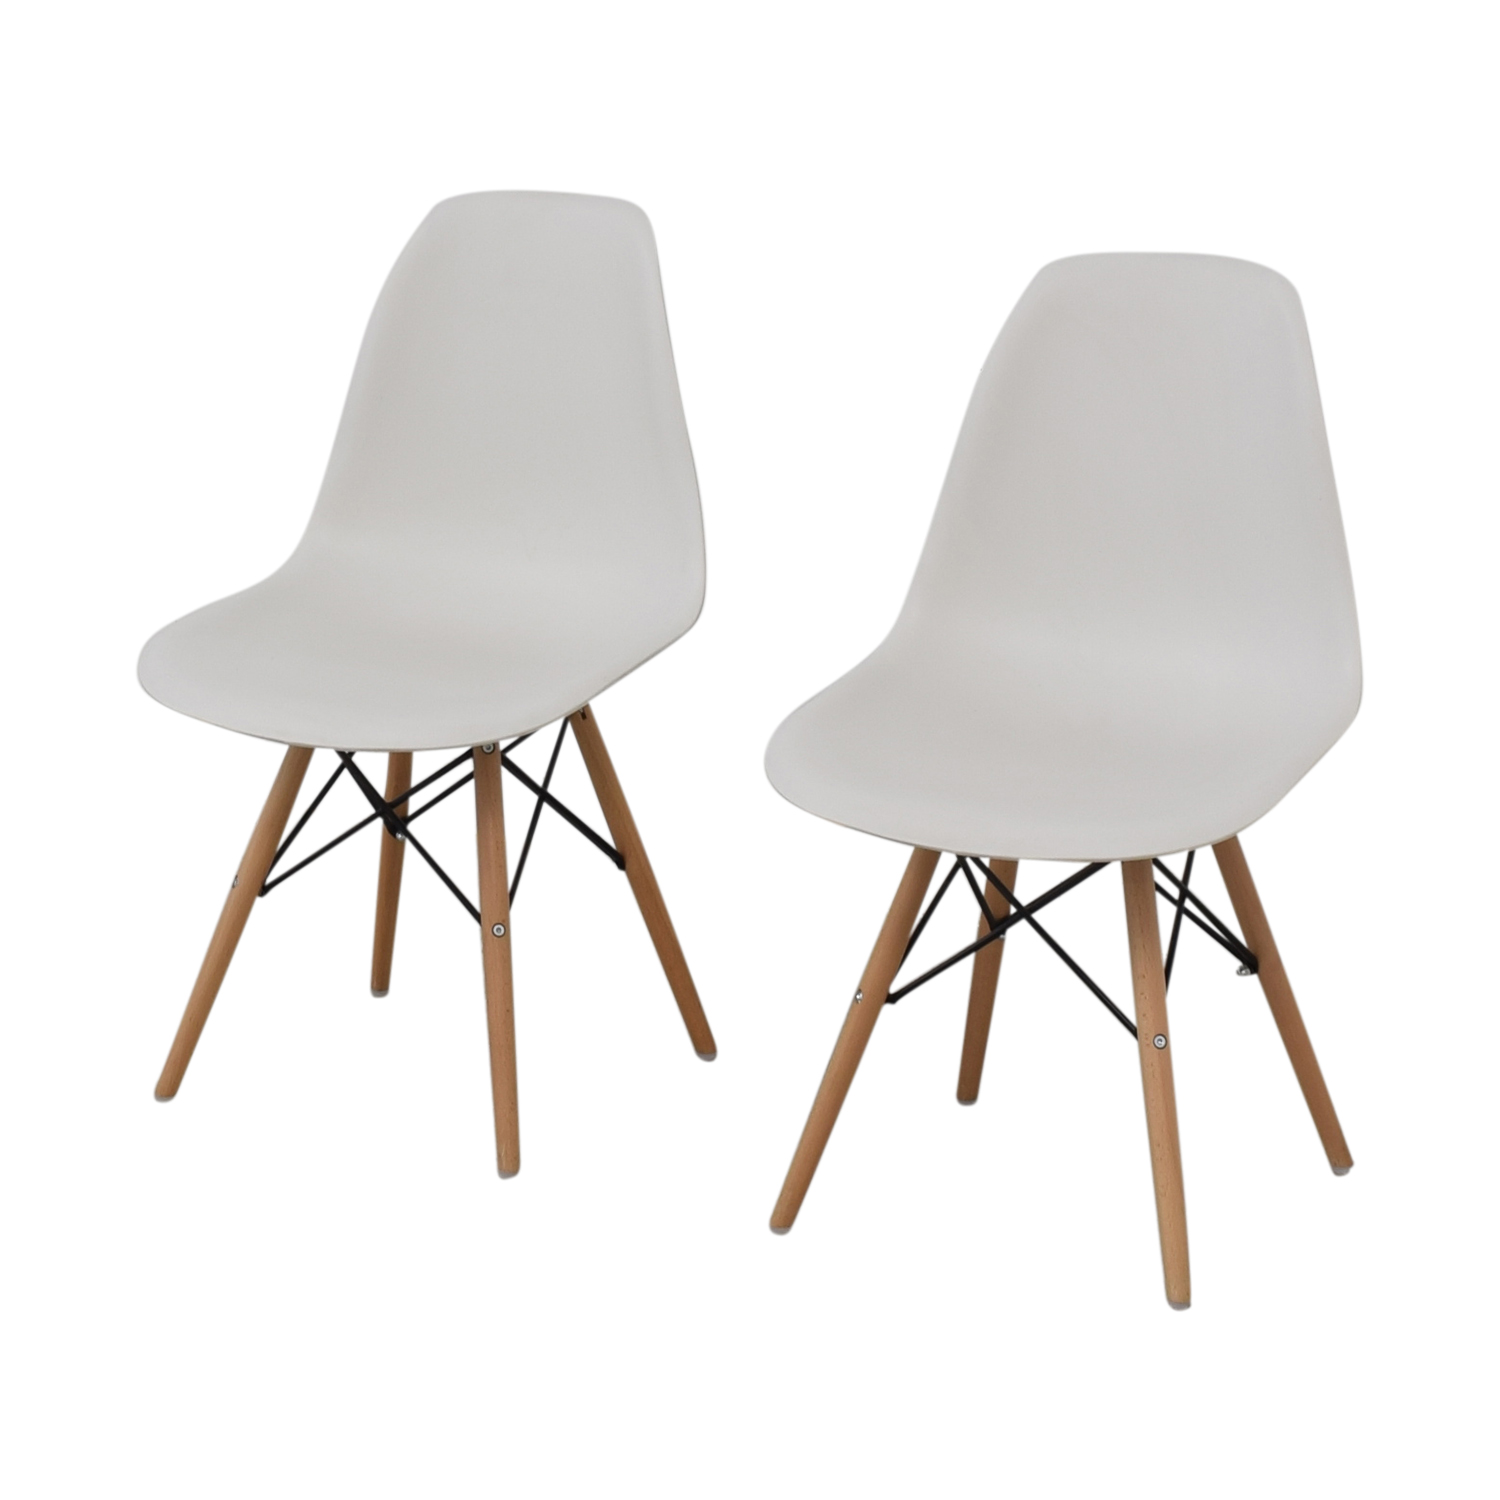 buy Wayfair Eames Replica White Dining Chairs Wayfair Dining Chairs